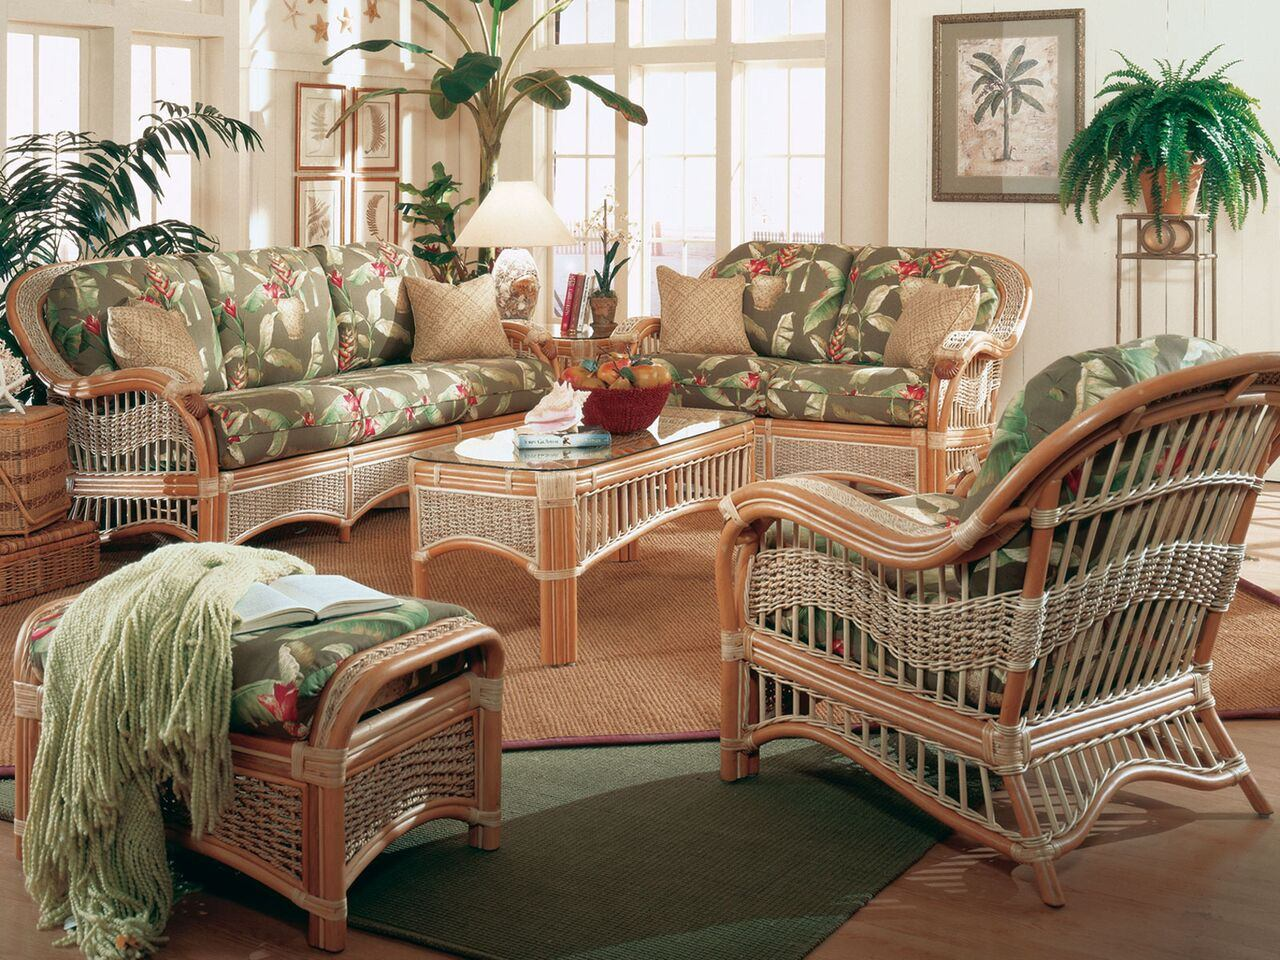 Spice Islands Spice Islands Seascape Sofa Natural Sofa - Rattan Imports